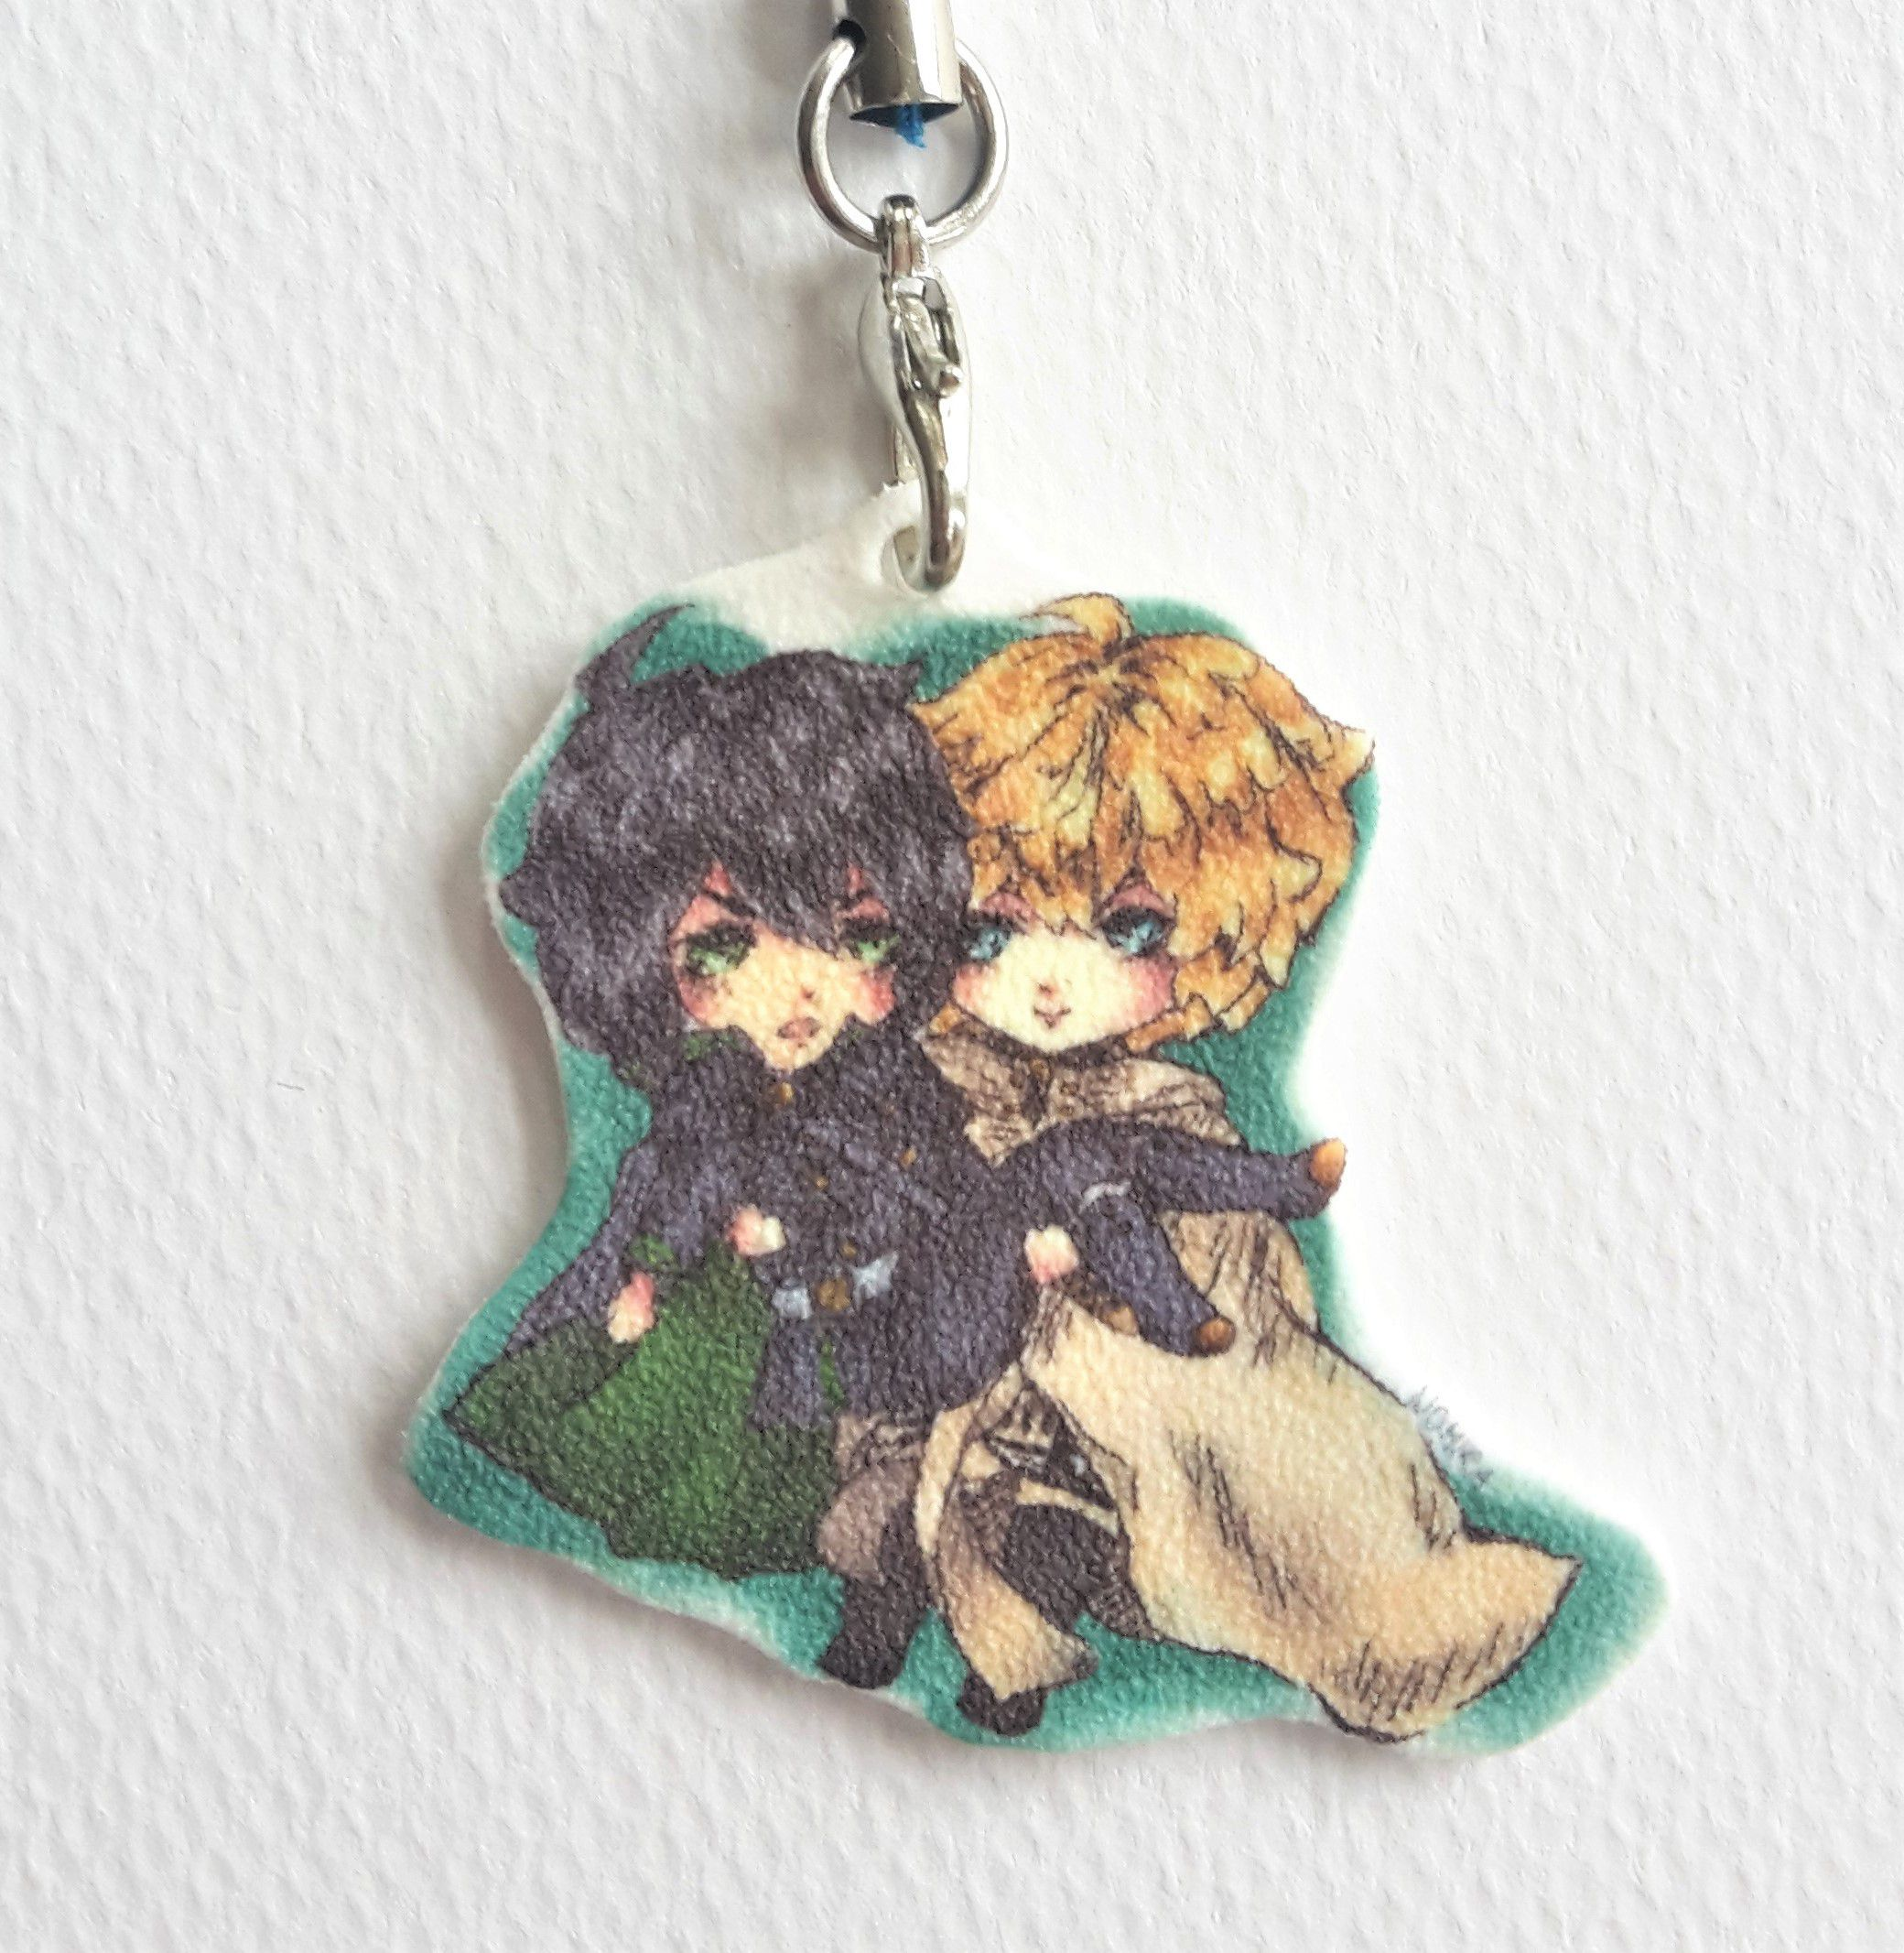 art cute charm keychain small anime manga adorable fanart